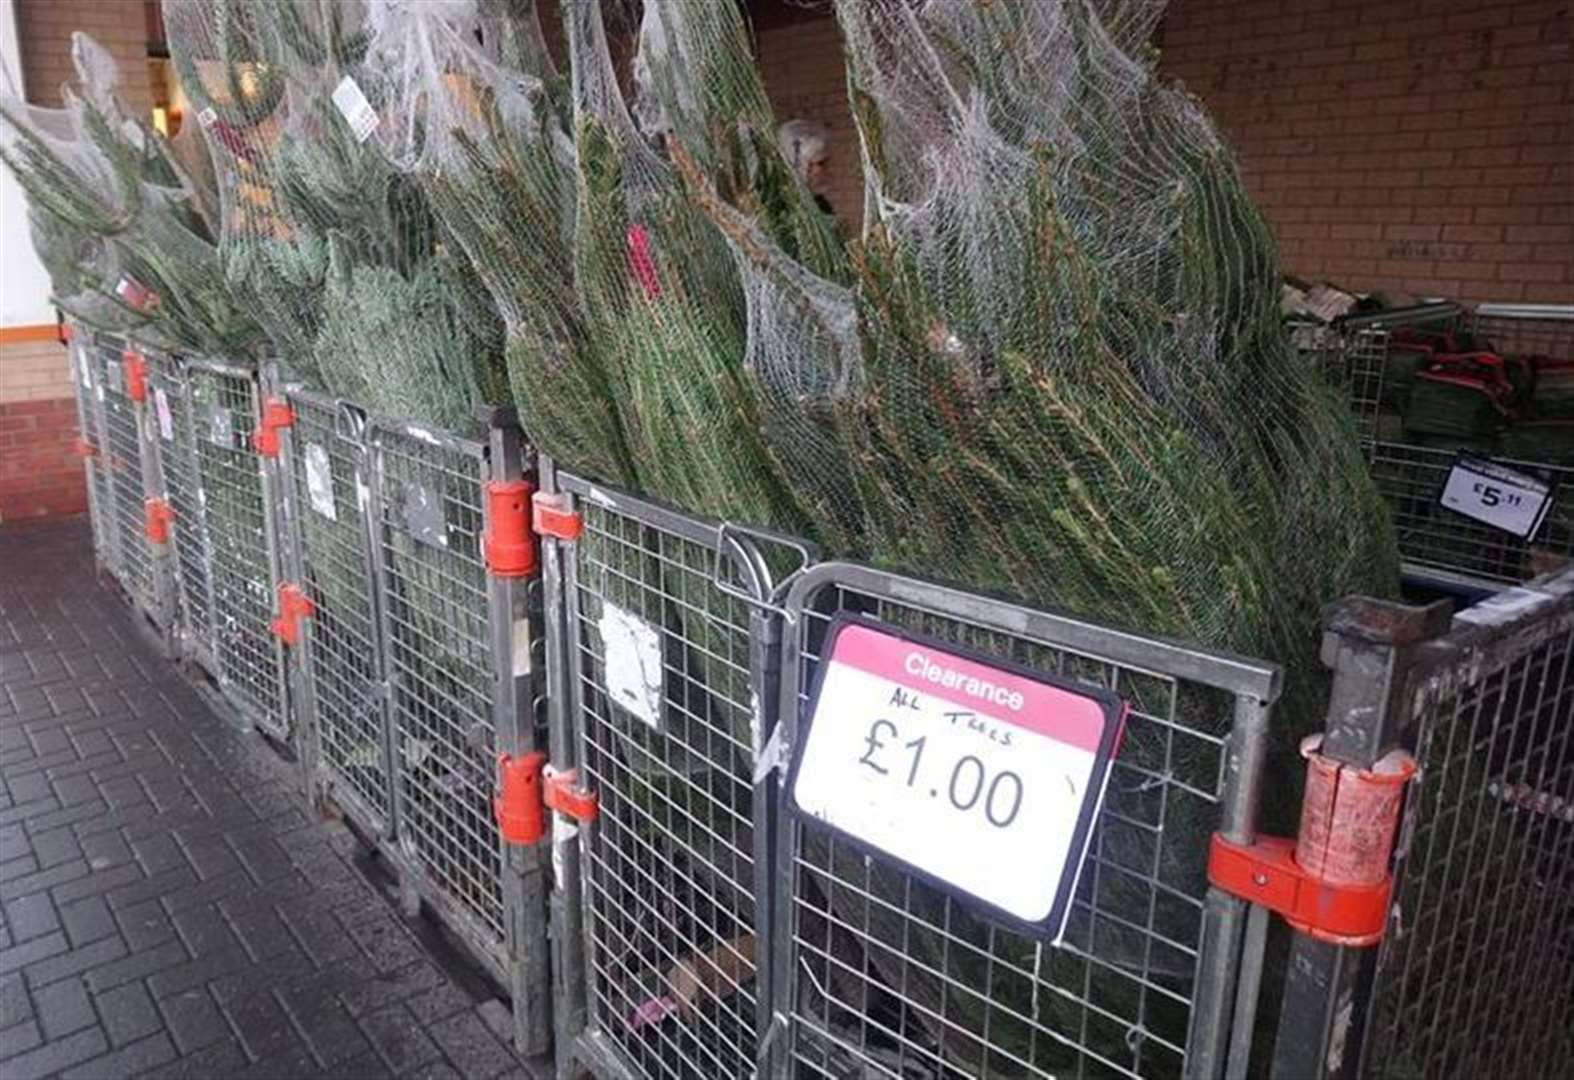 Where to buy a Christmas tree for £1